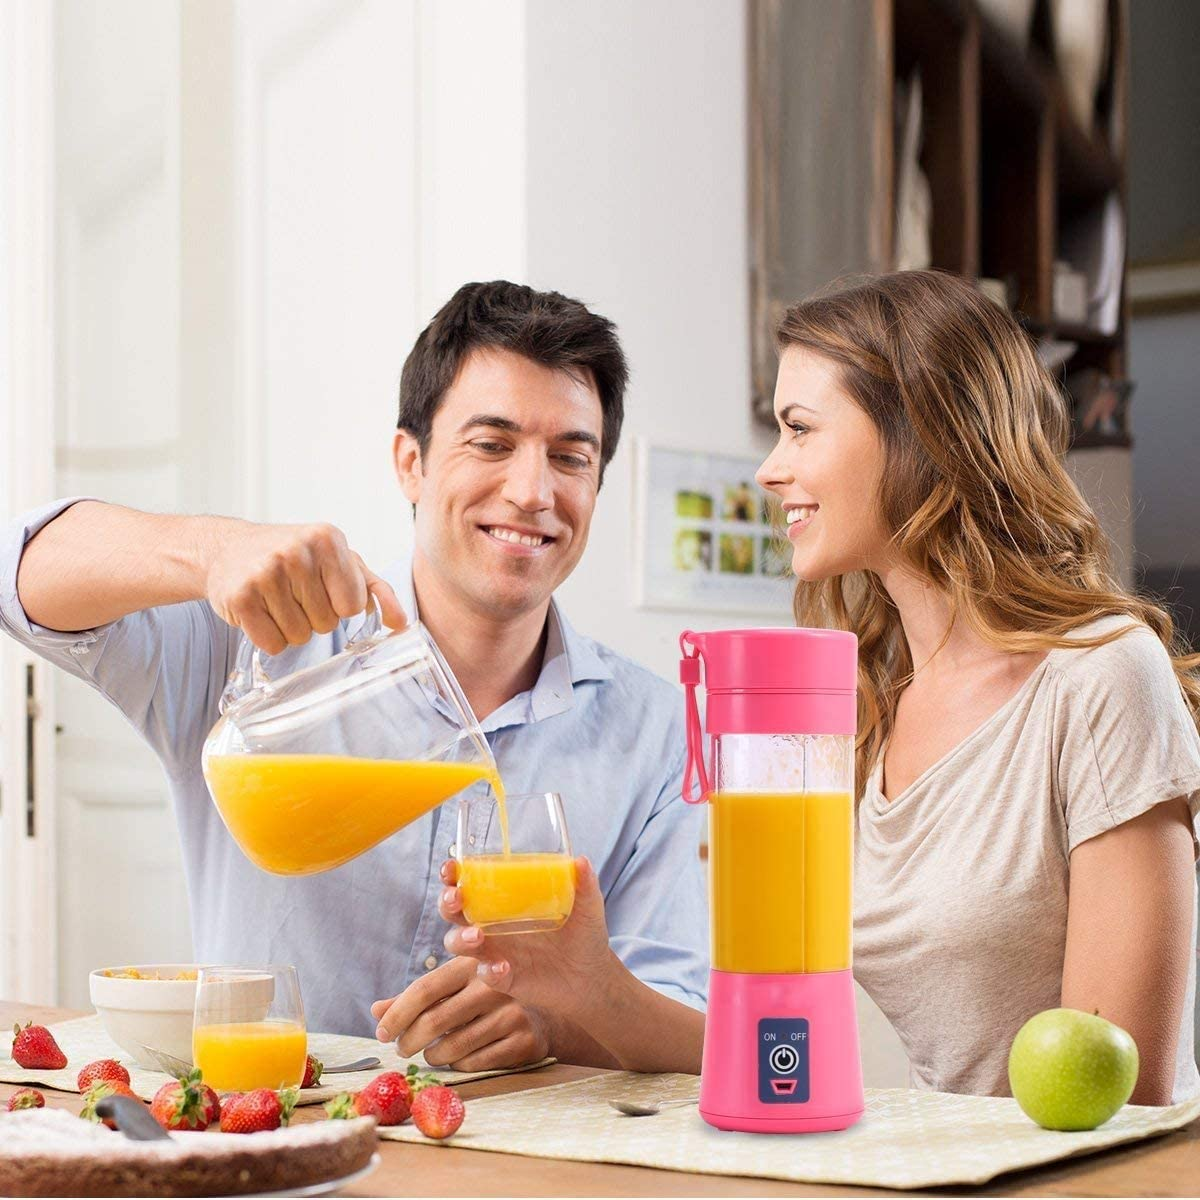 Portable Juicer Blender, Home Fruit Blender, USB Juicer 4 Cup Blade 3D, With USB Charging Cable, 380ml Fruit Blender, Suitable for Family Outdoor Travel, Such as Smoothies and Milkshakes (Plum, Sky Blue, Light Green, Pink Color) (380ML, Pink Color)